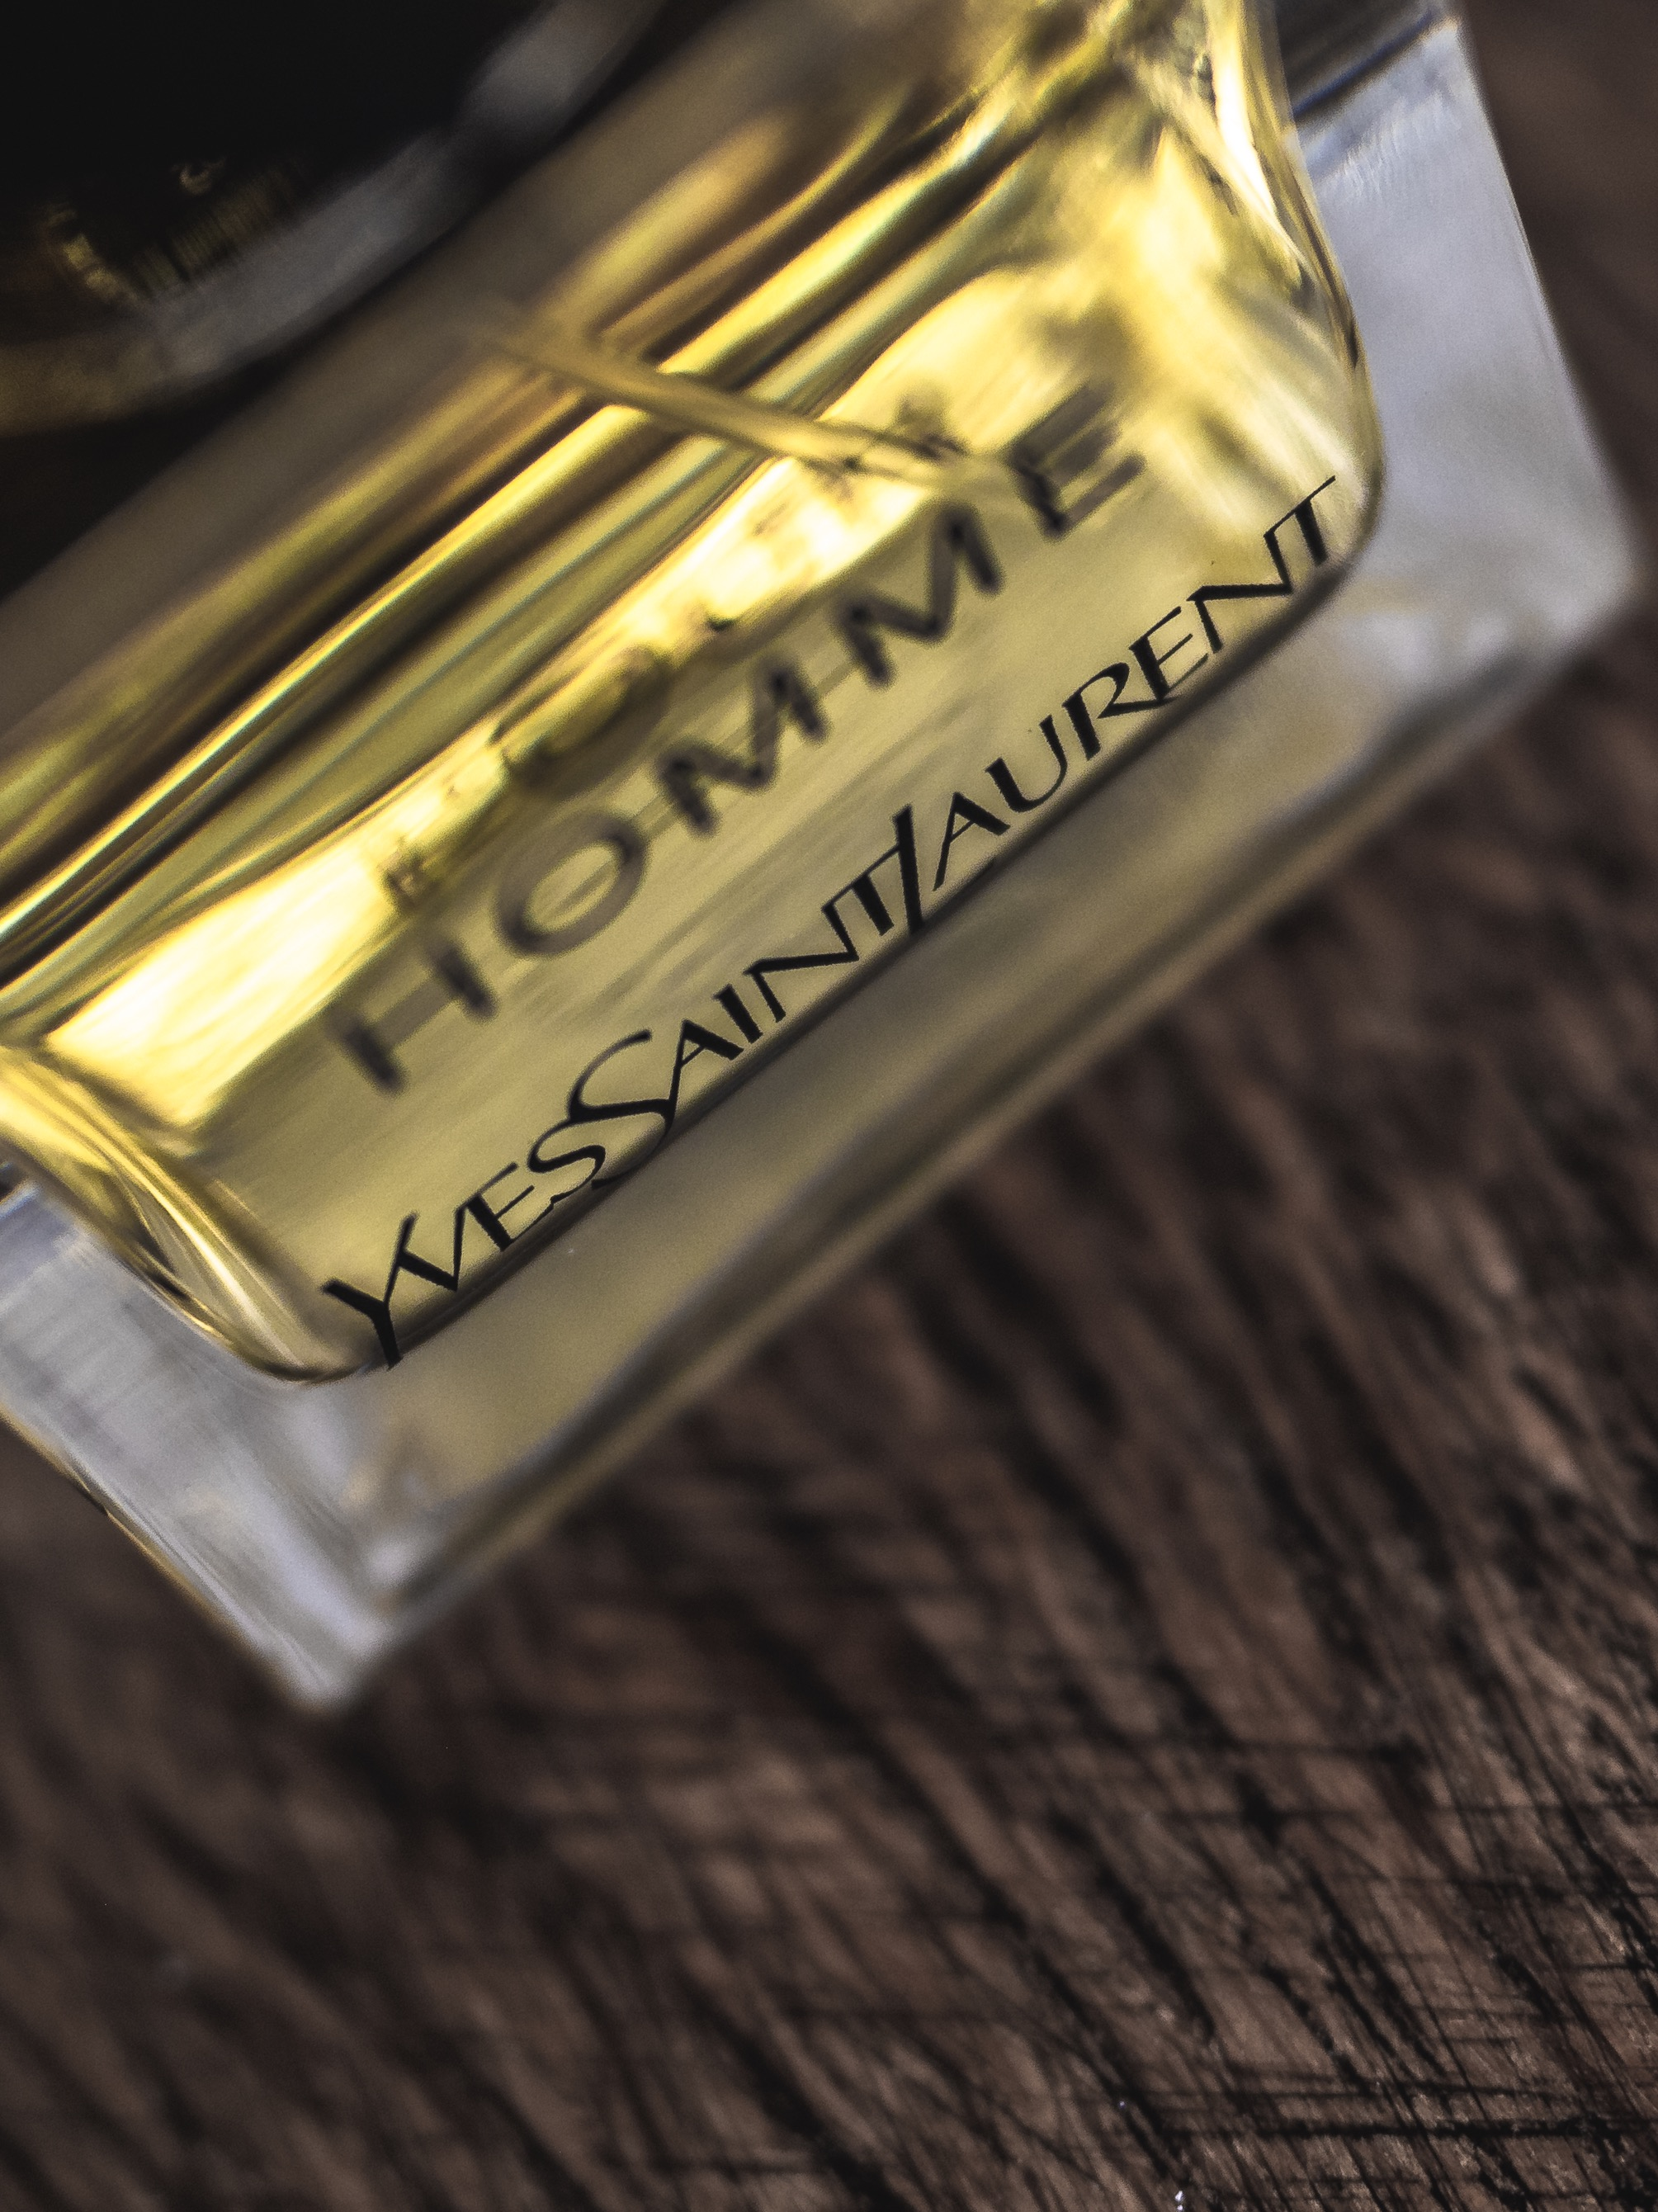 Yves Saint Laurent Pour Homme Review